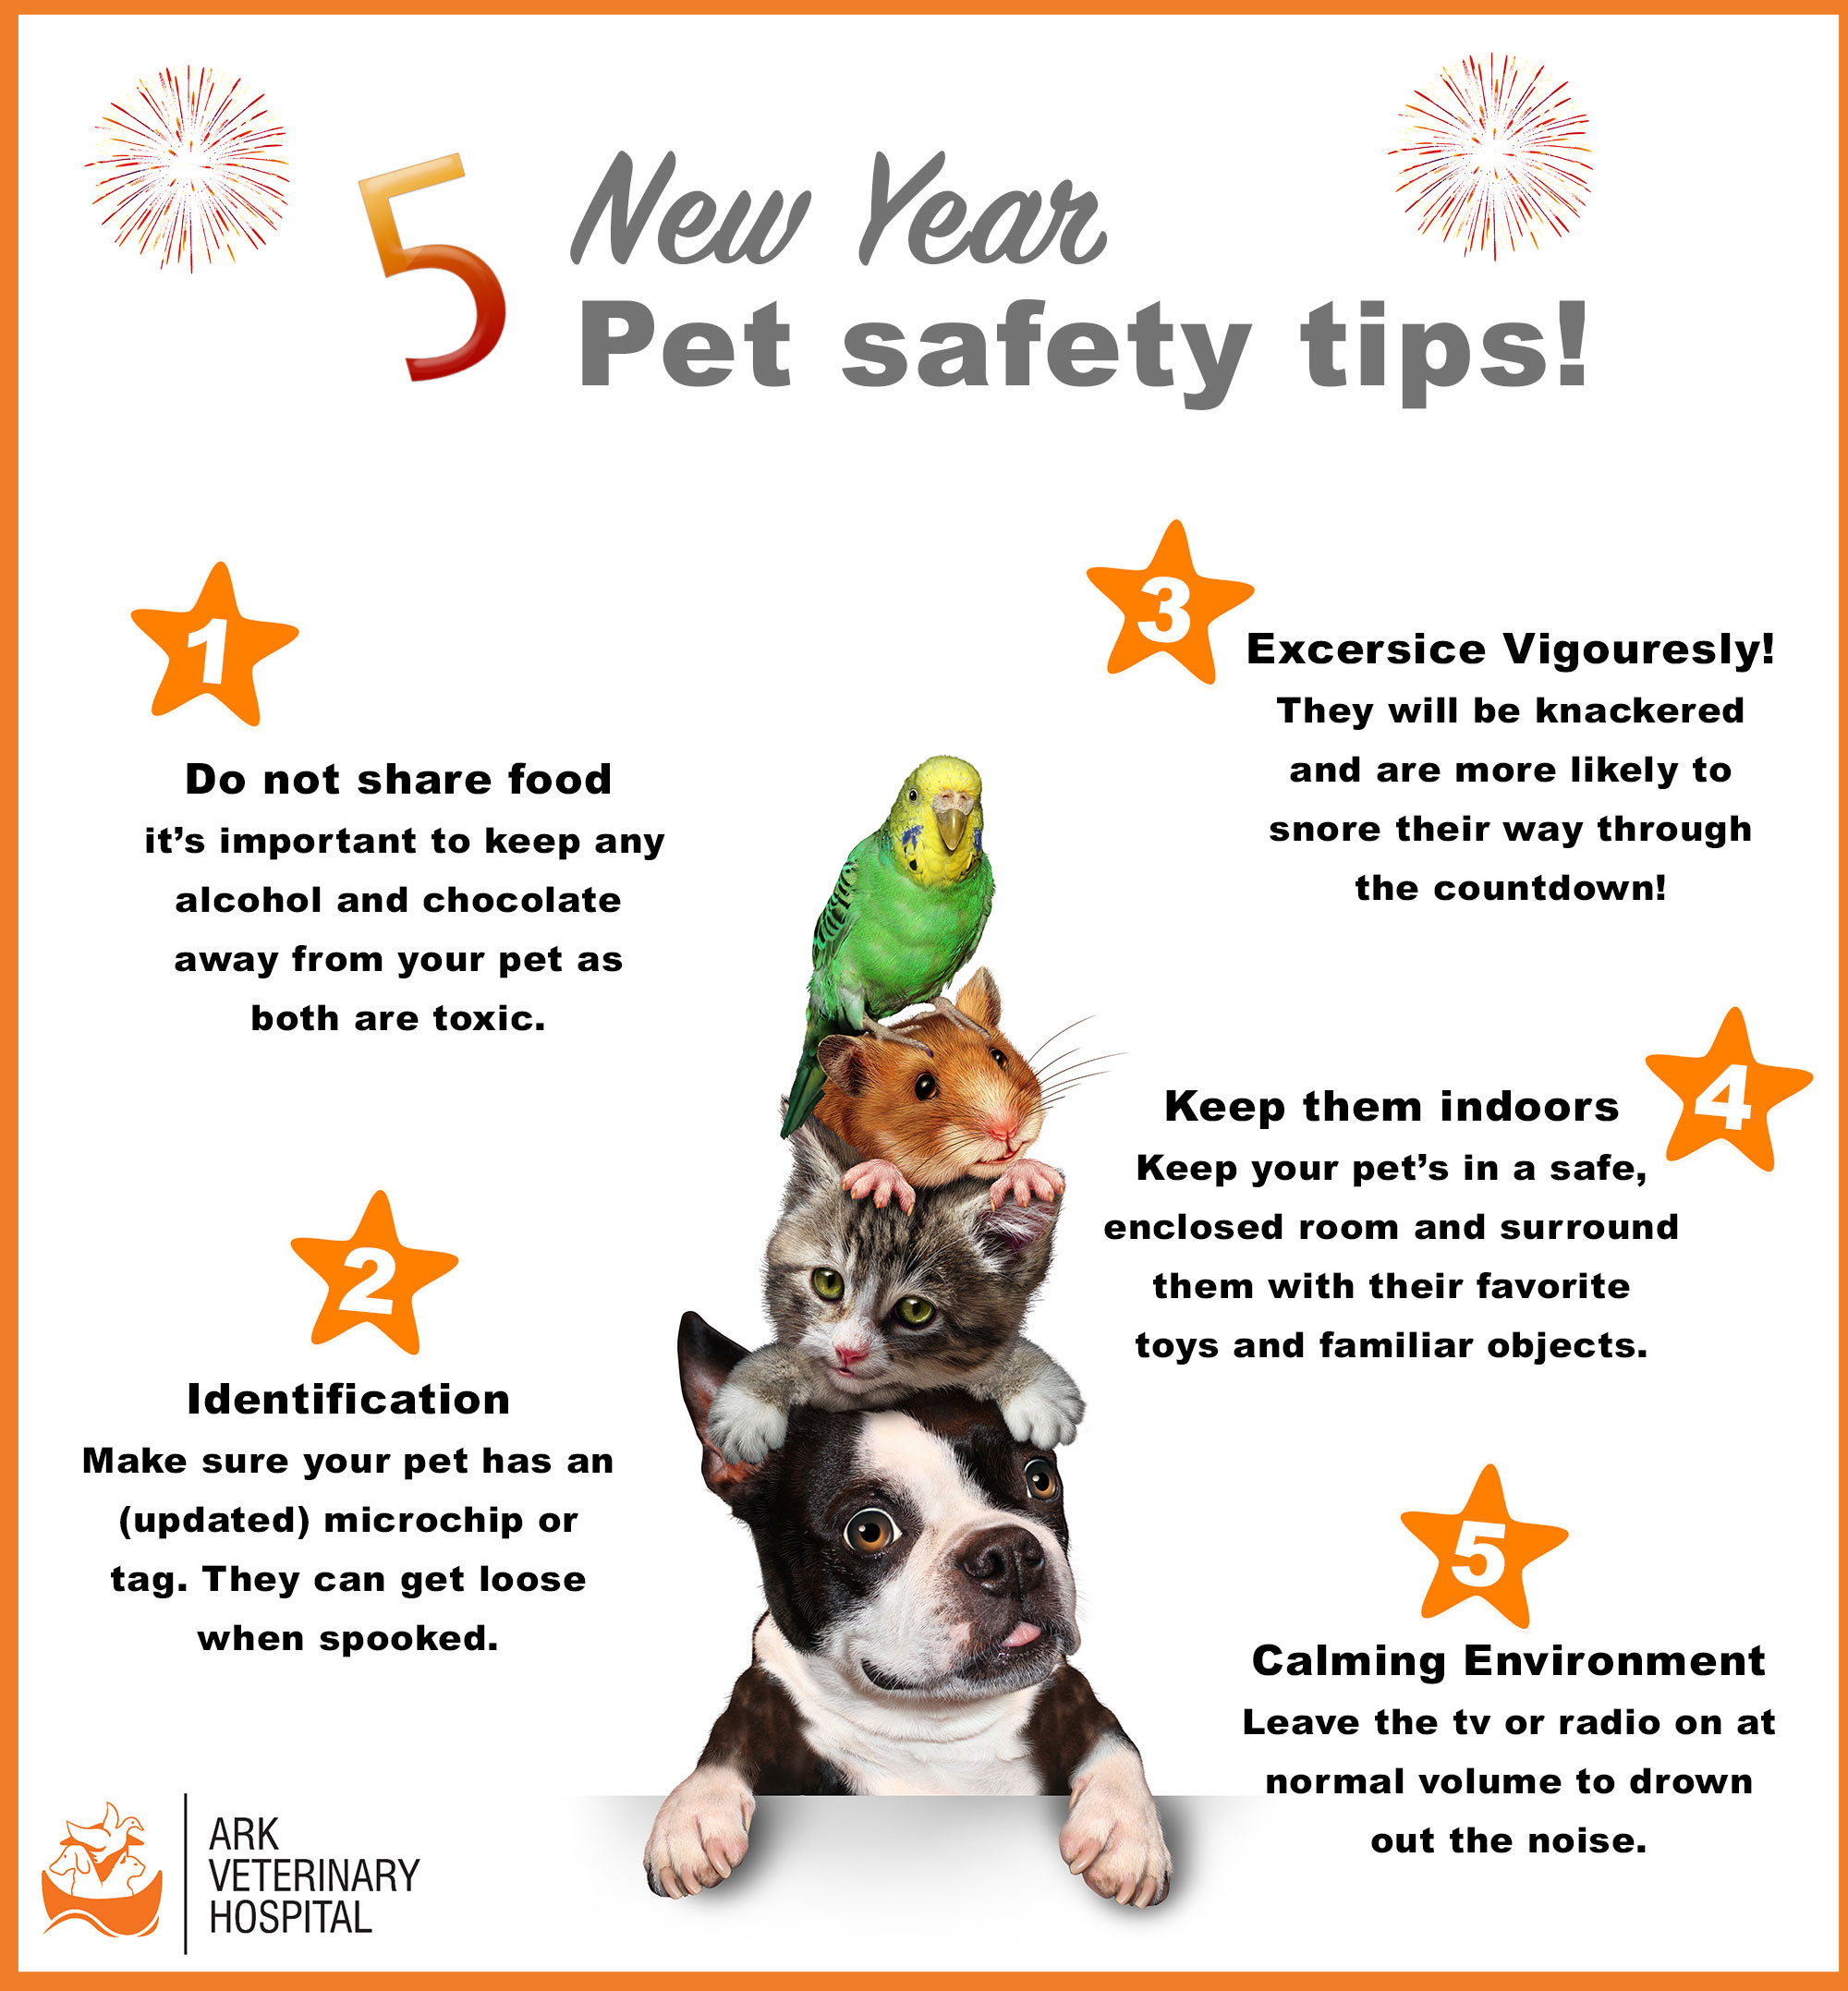 5 tips to keep your pets safe